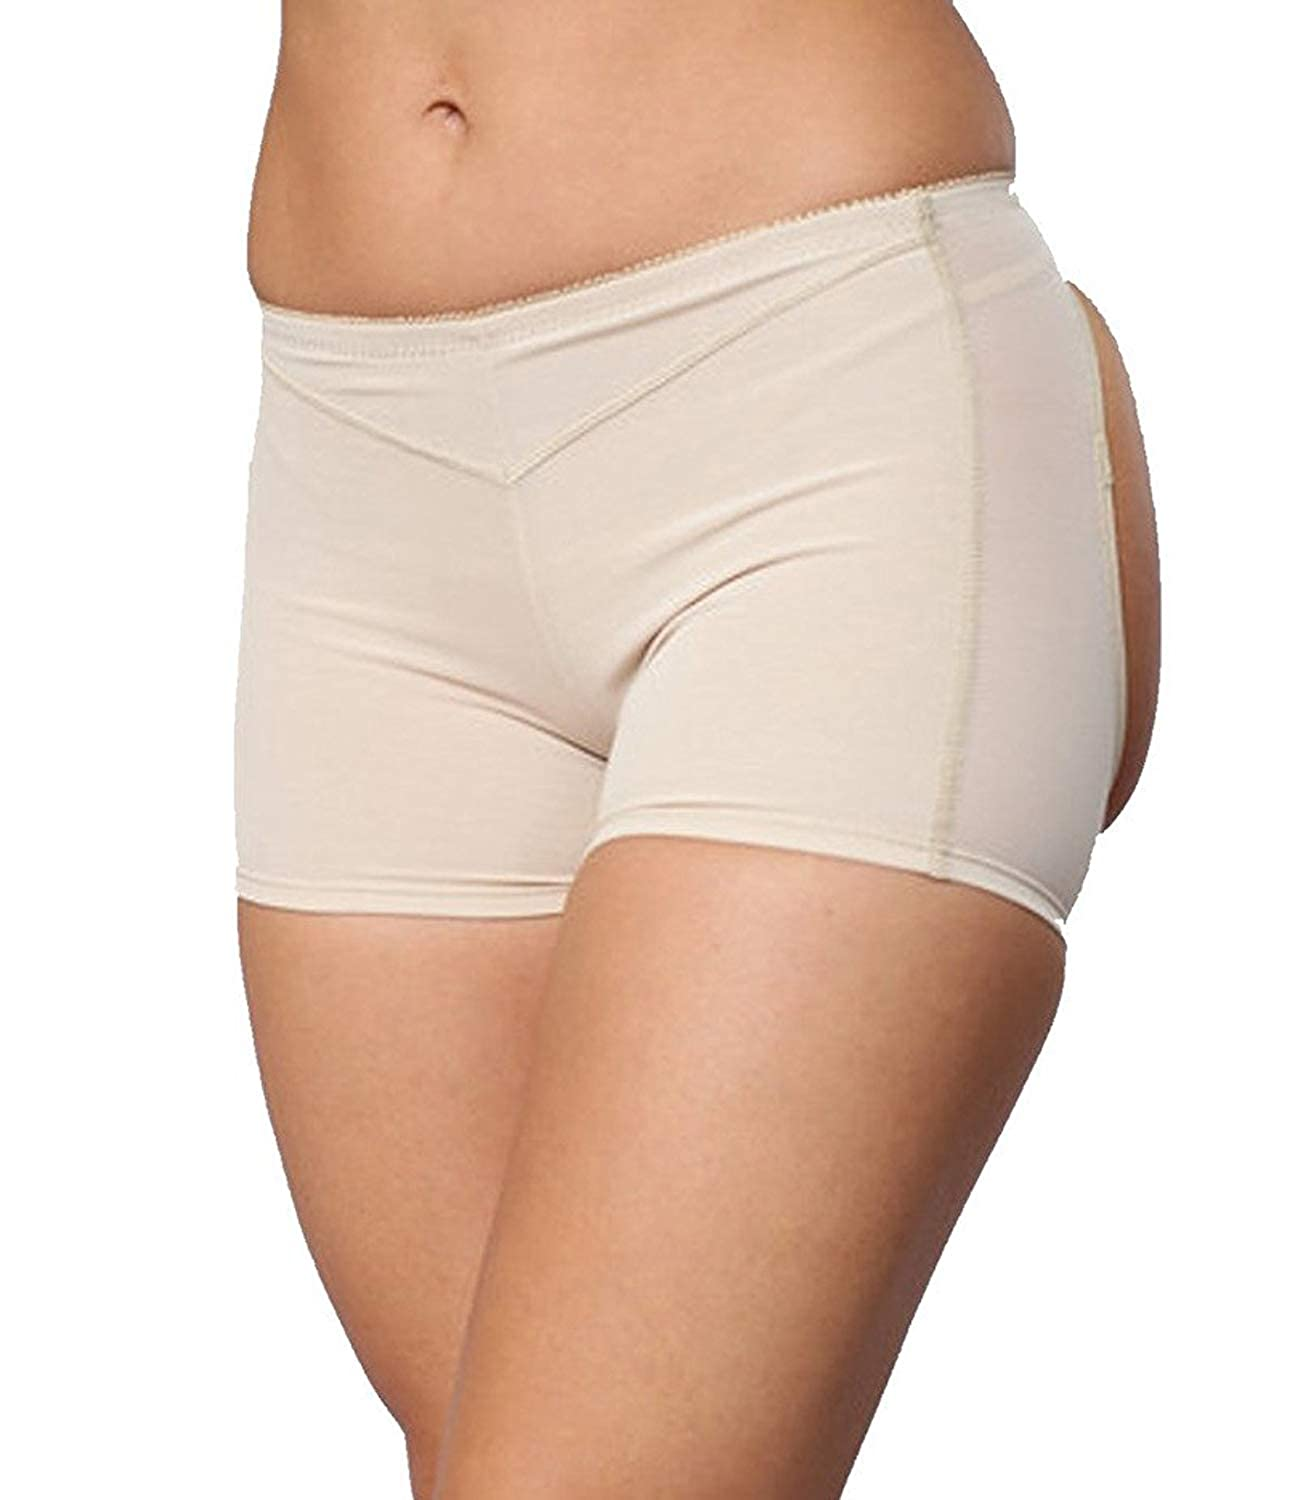 95e2d7183604a SEXYWG Womens Butt Lifter Panties Tummy Control Seamless Enhancer Body  Shaper at Amazon Women s Clothing store